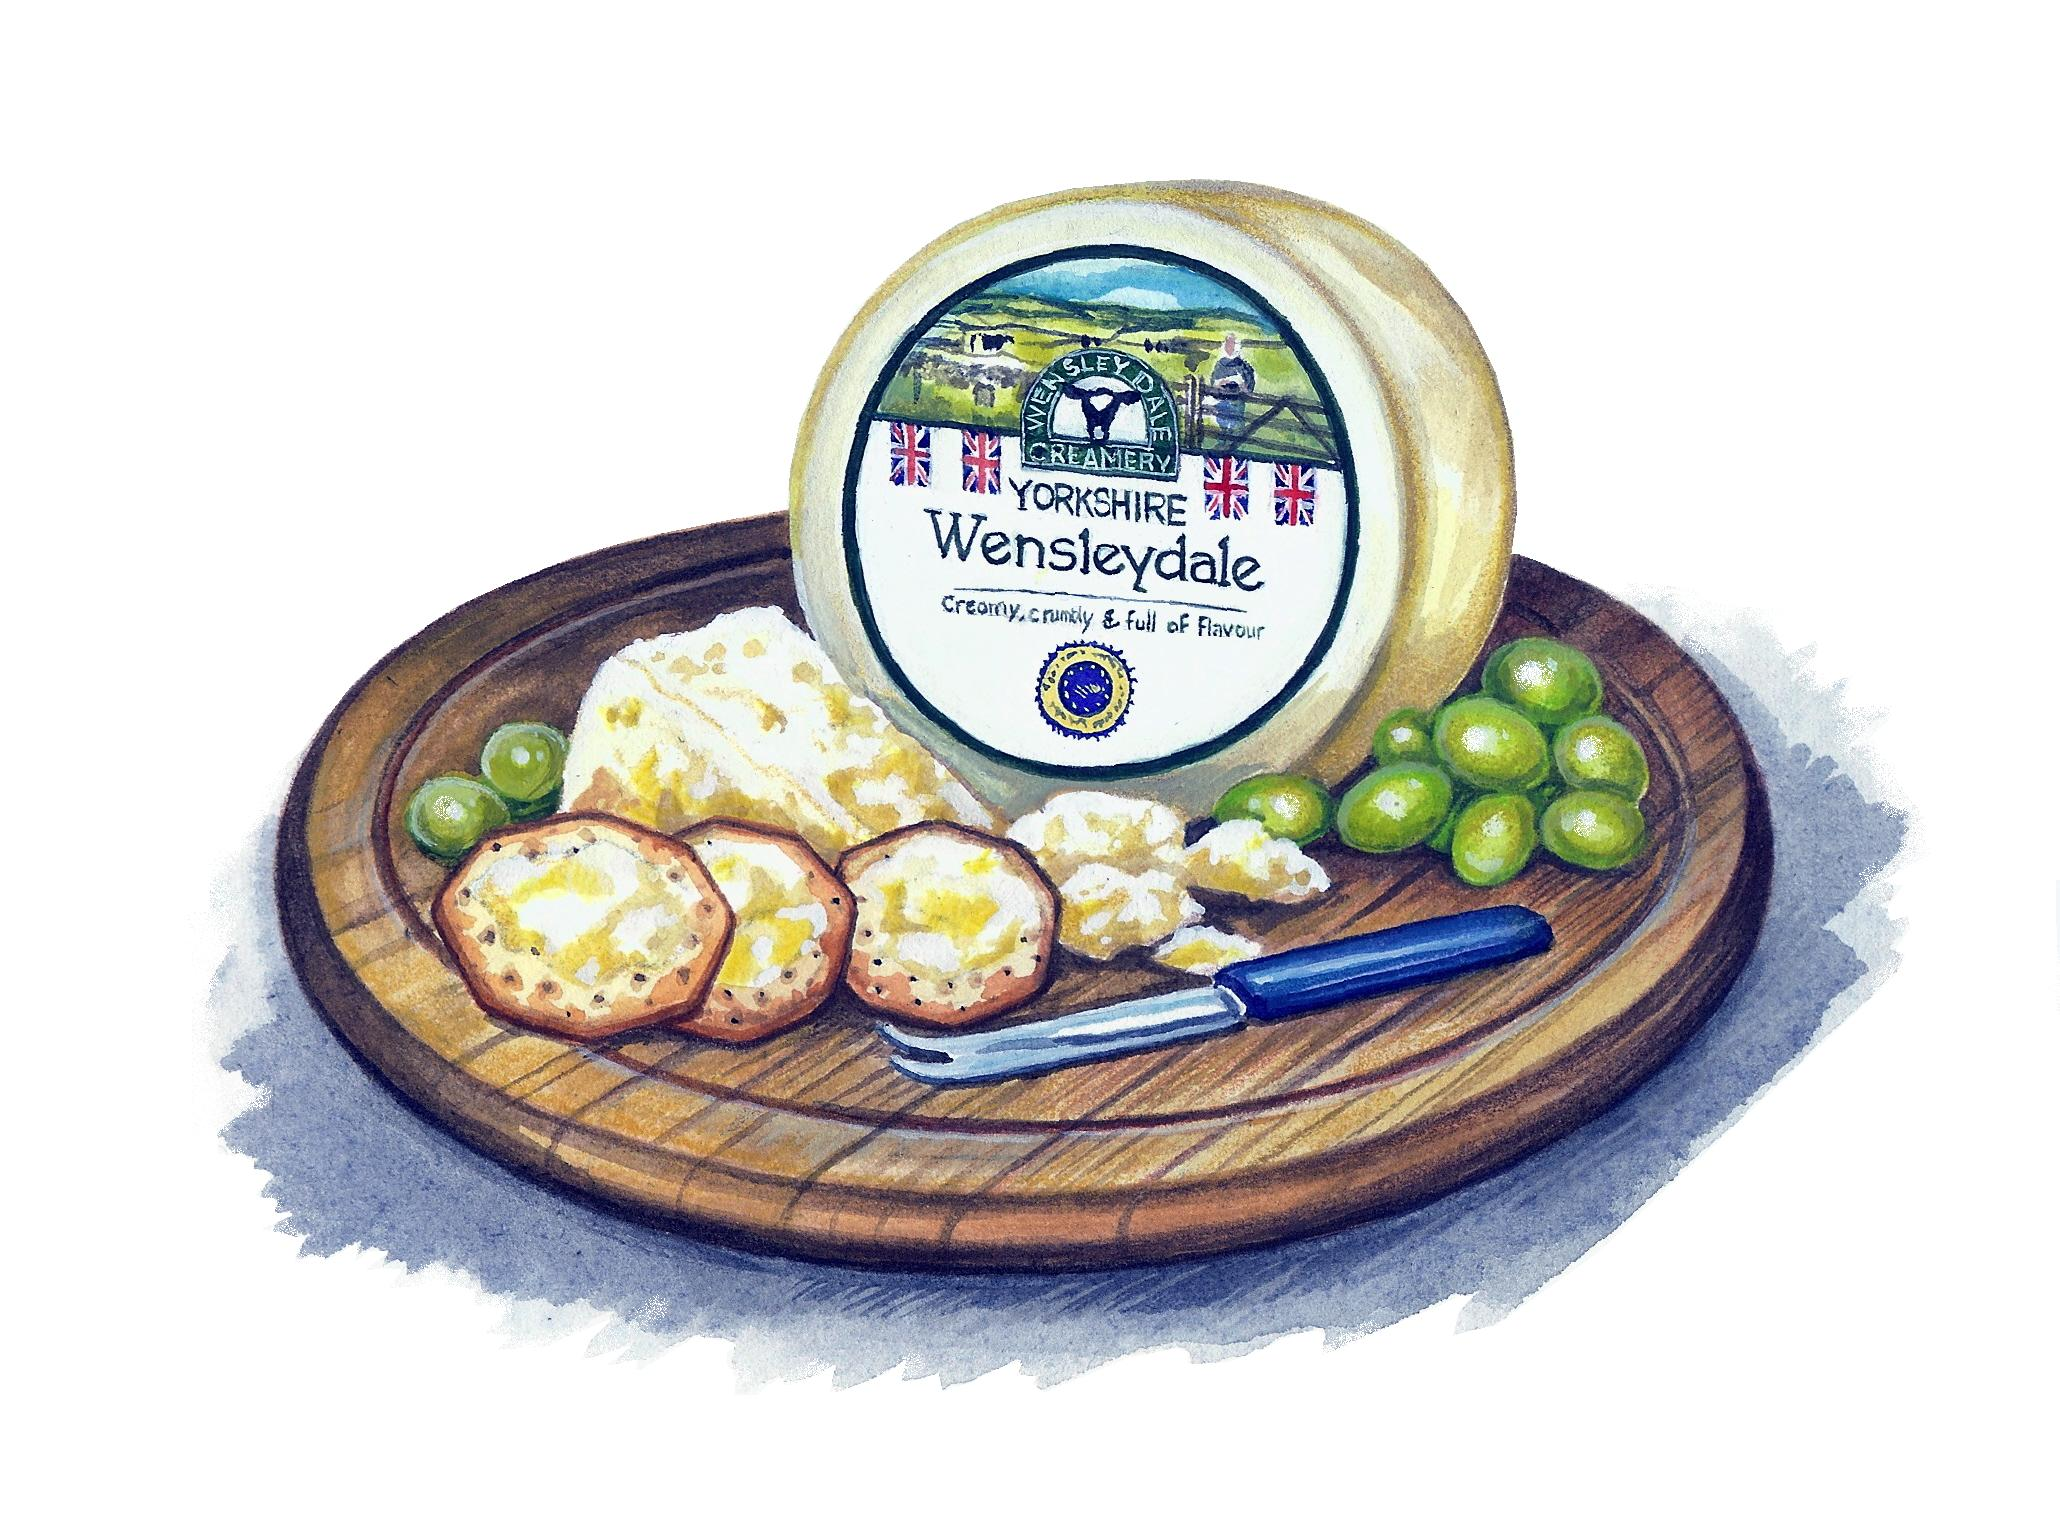 Wensleydale Cheese Artwork